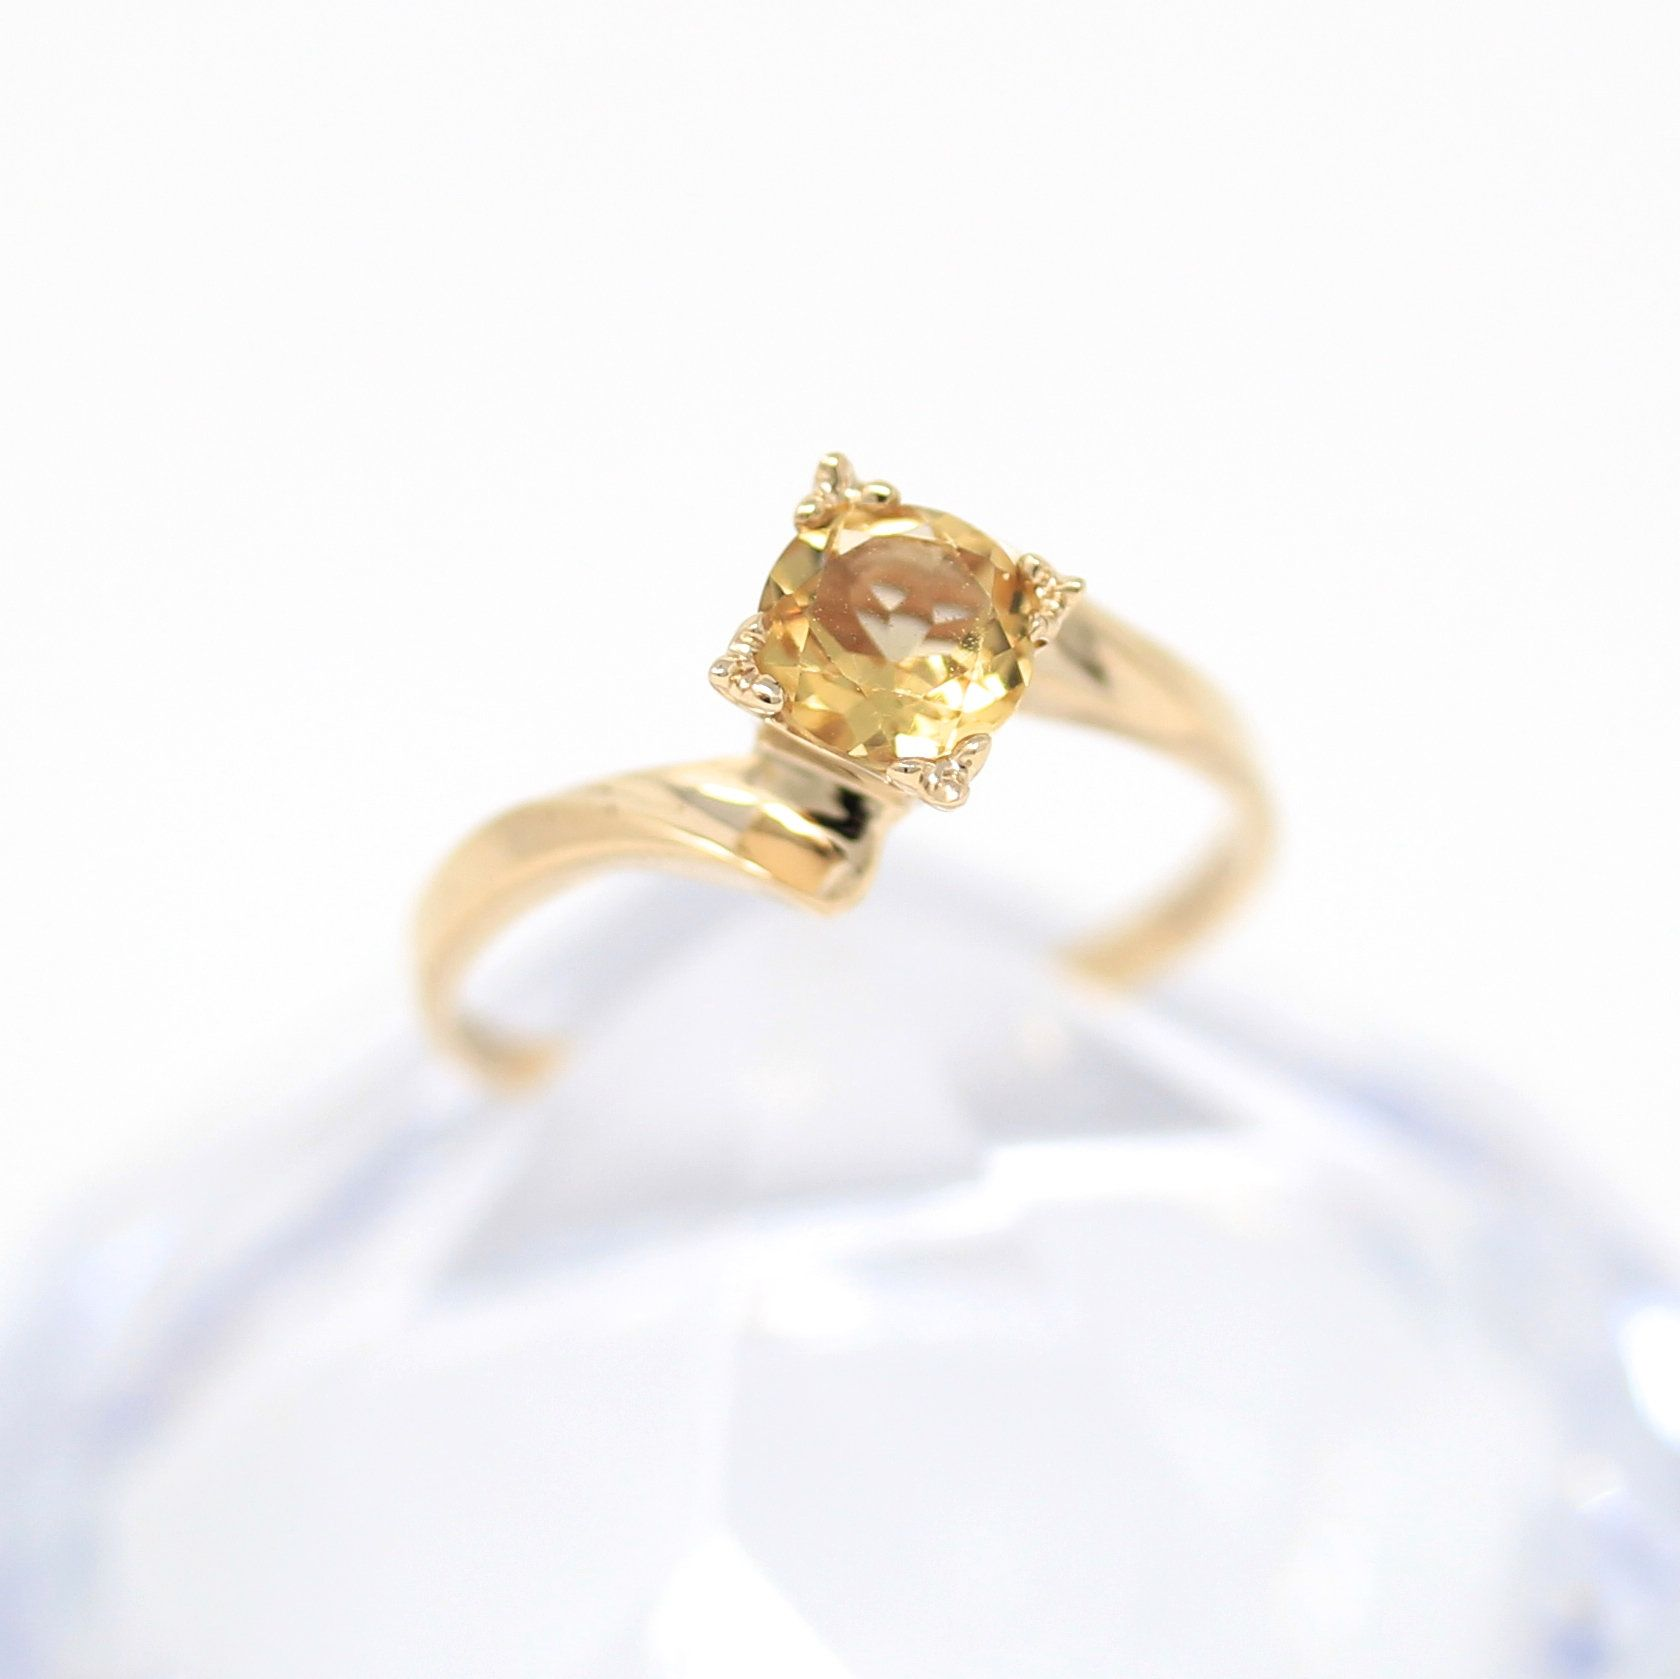 Vintage Citrine Ring 10k Yellow Gold Bypass Ring Size 6 1 2 Retro 1960s Yellow 62 Ct November Birthstone Fine Retro Jewelry Genuine Citrine Modern Jewelry